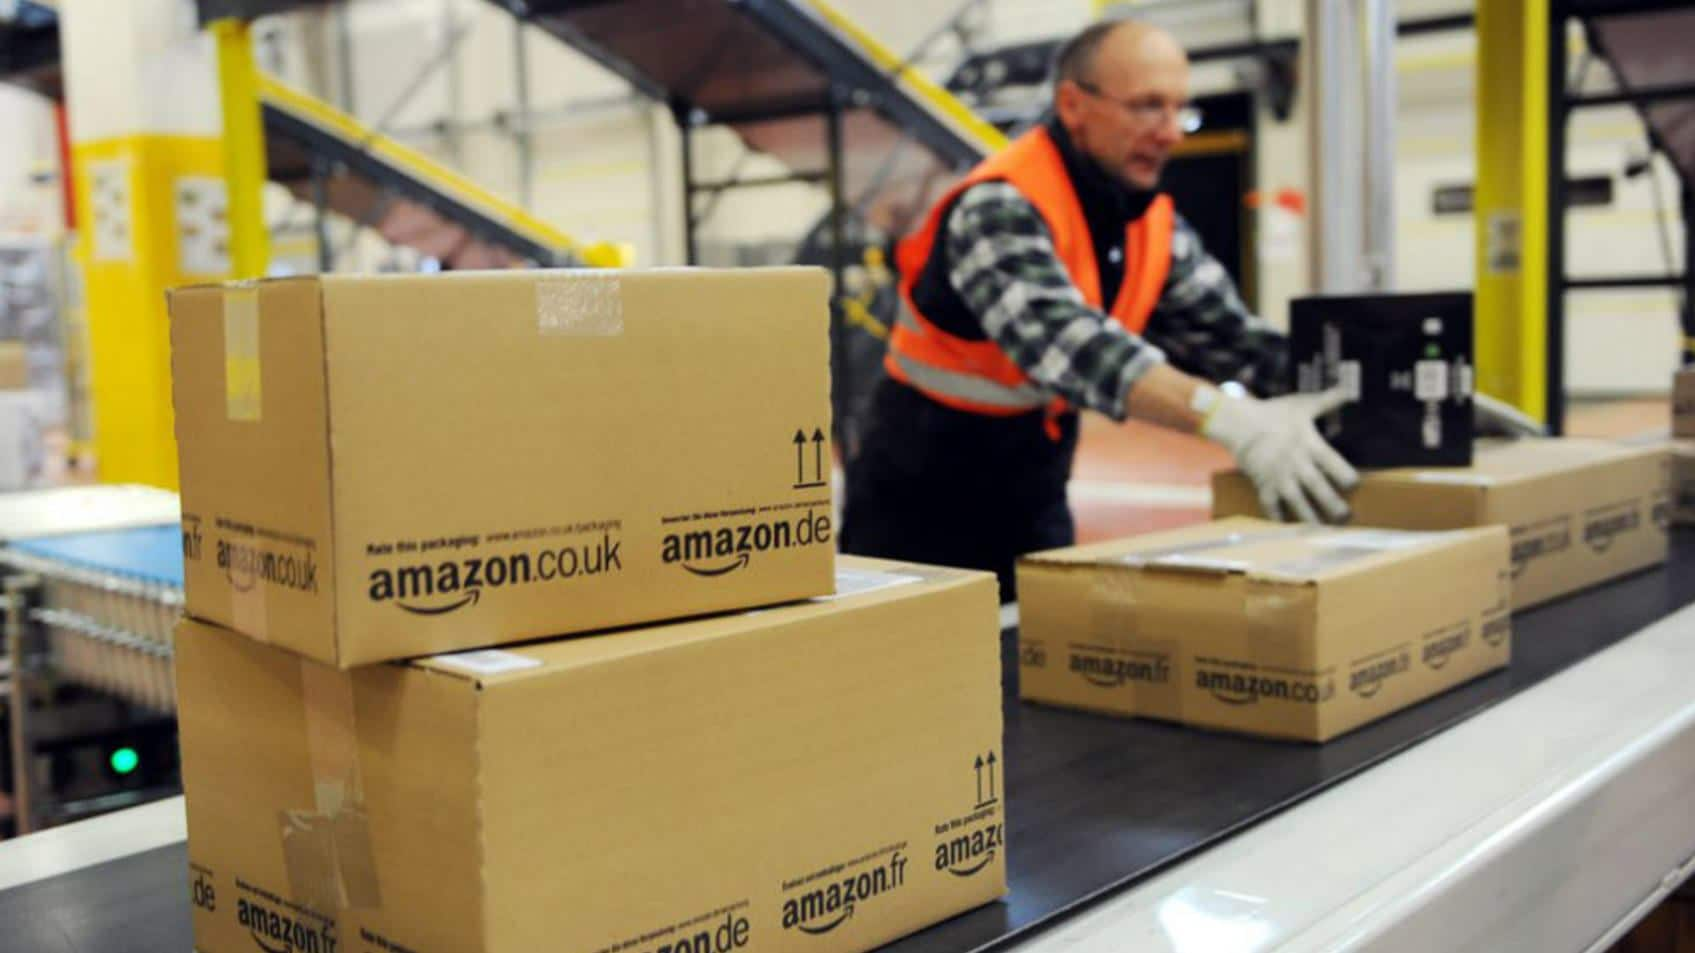 Amazon schafft 5000 Jobs in Grossbritannien